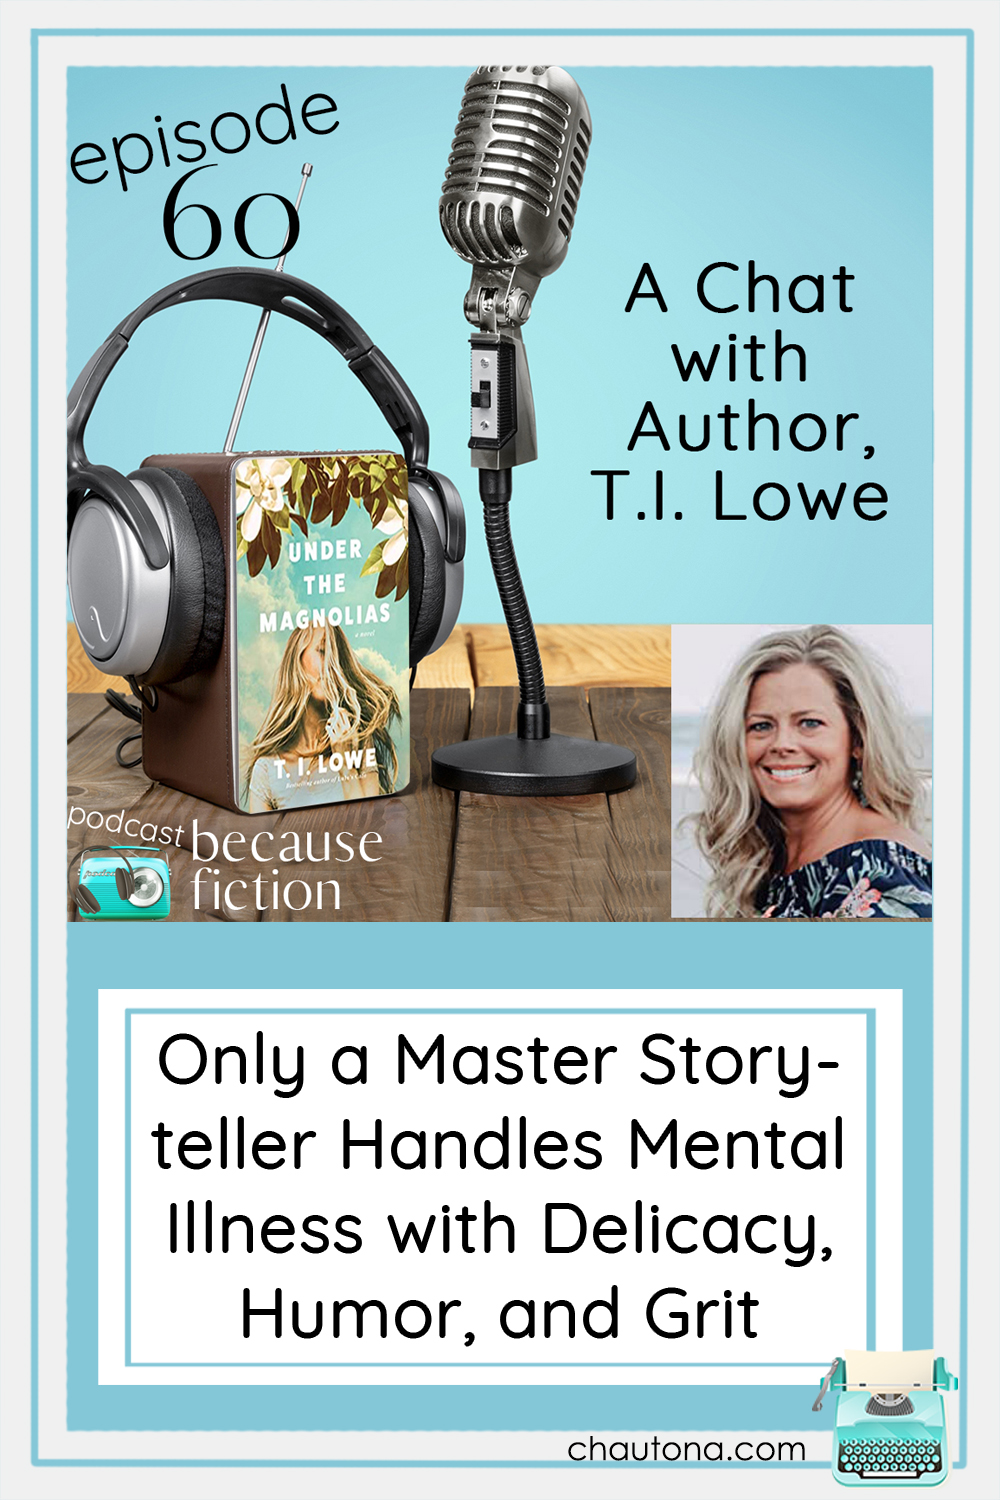 Set in 1980, author T.I. Lowe tackles the tough topic of mental illness with all the Southern charm you'd expect and a dash of humor. via @chautonahavig